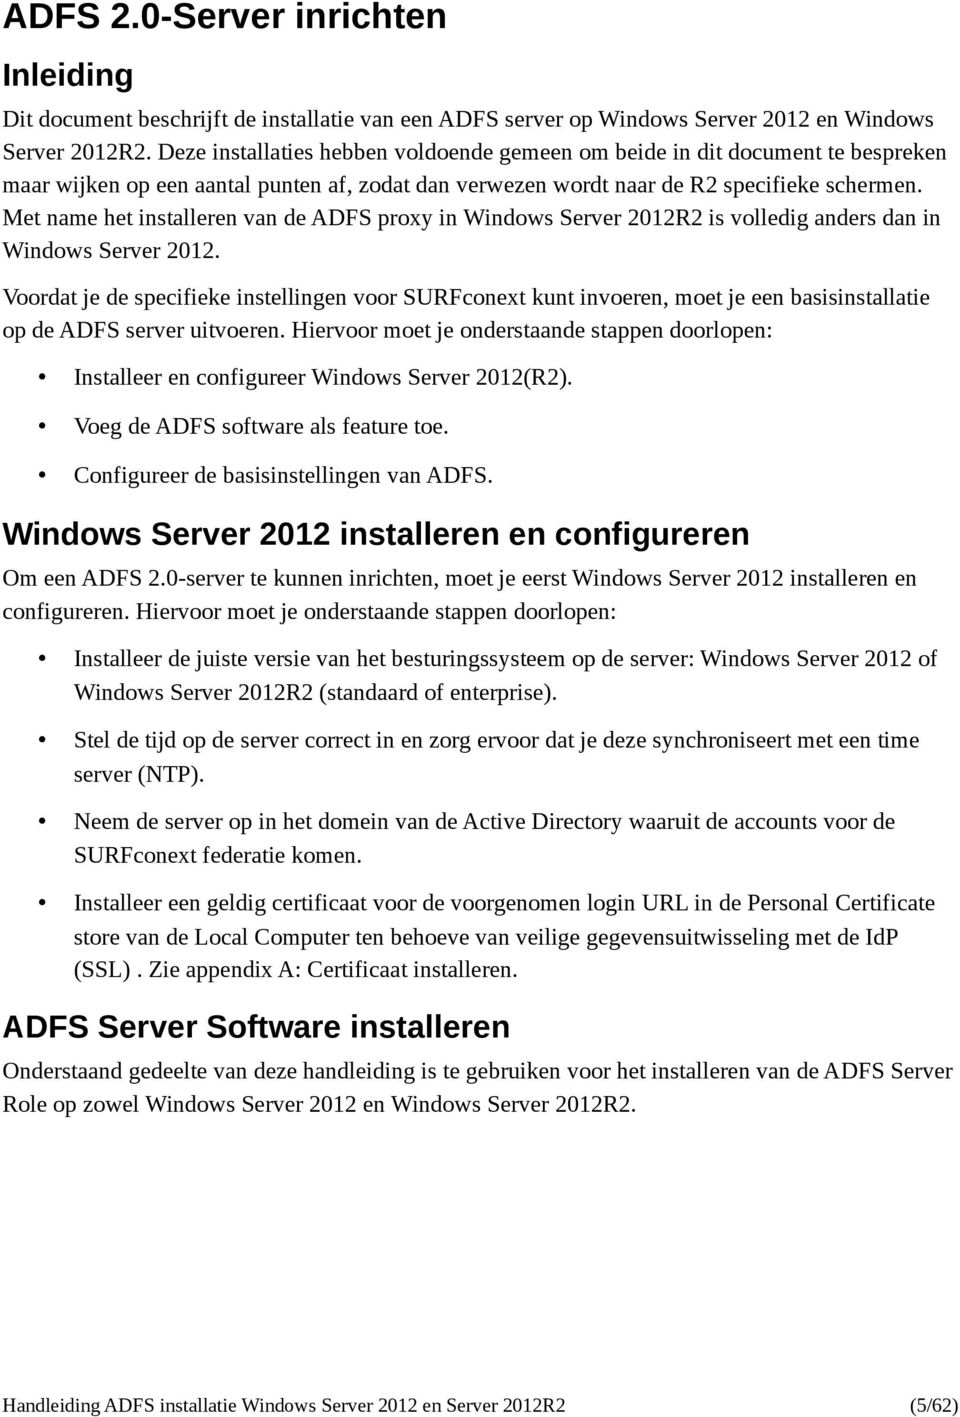 Met name het installeren van de ADFS proxy in Windows Server 2012R2 is volledig anders dan in Windows Server 2012.